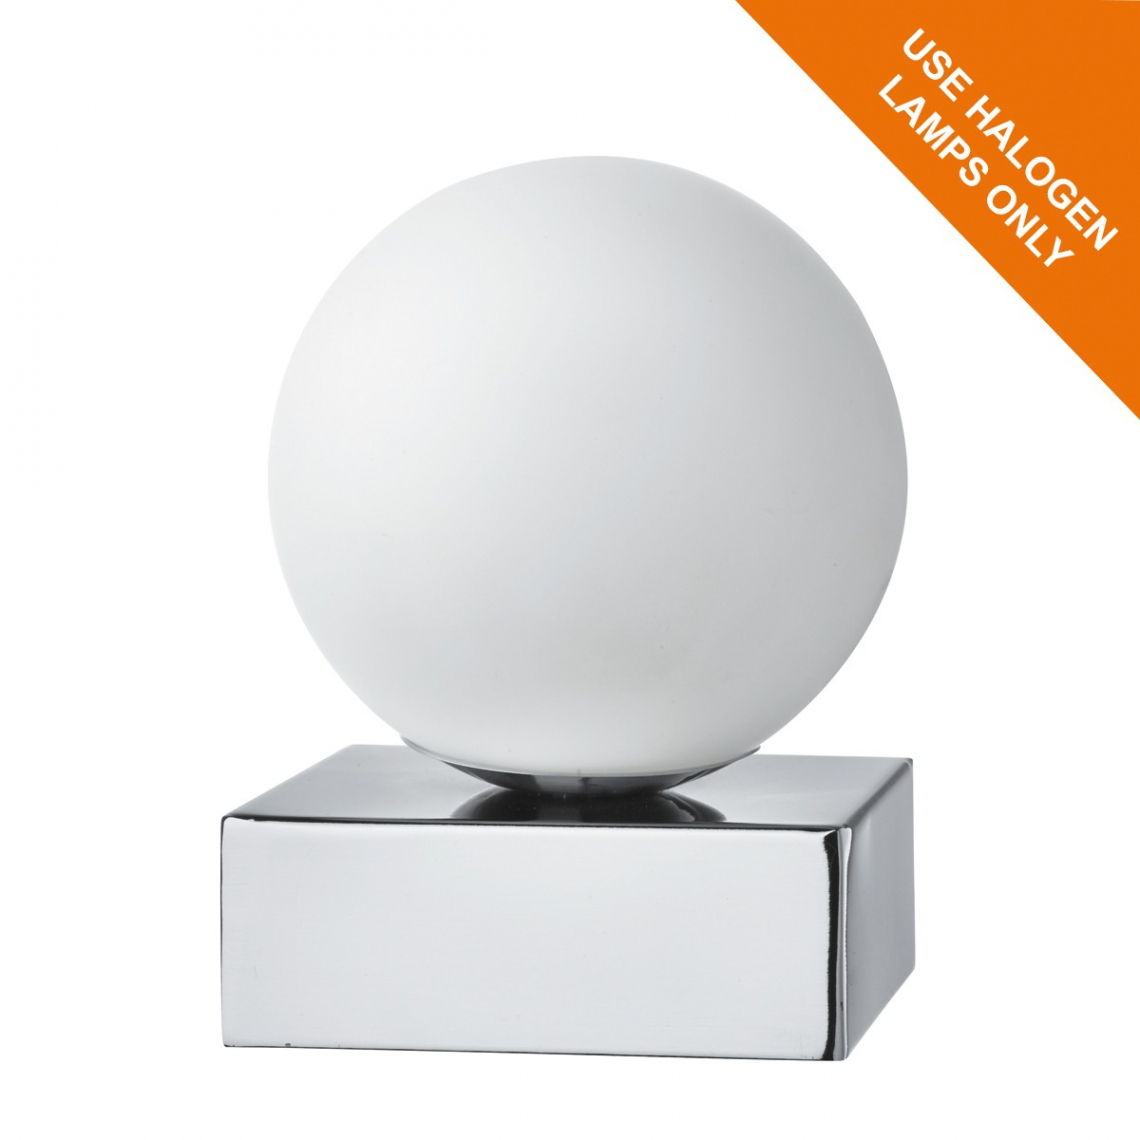 Chrome touch table lamp with round opal white glass shade modish chrome touch table lamp with round opal white glass shade aloadofball Images